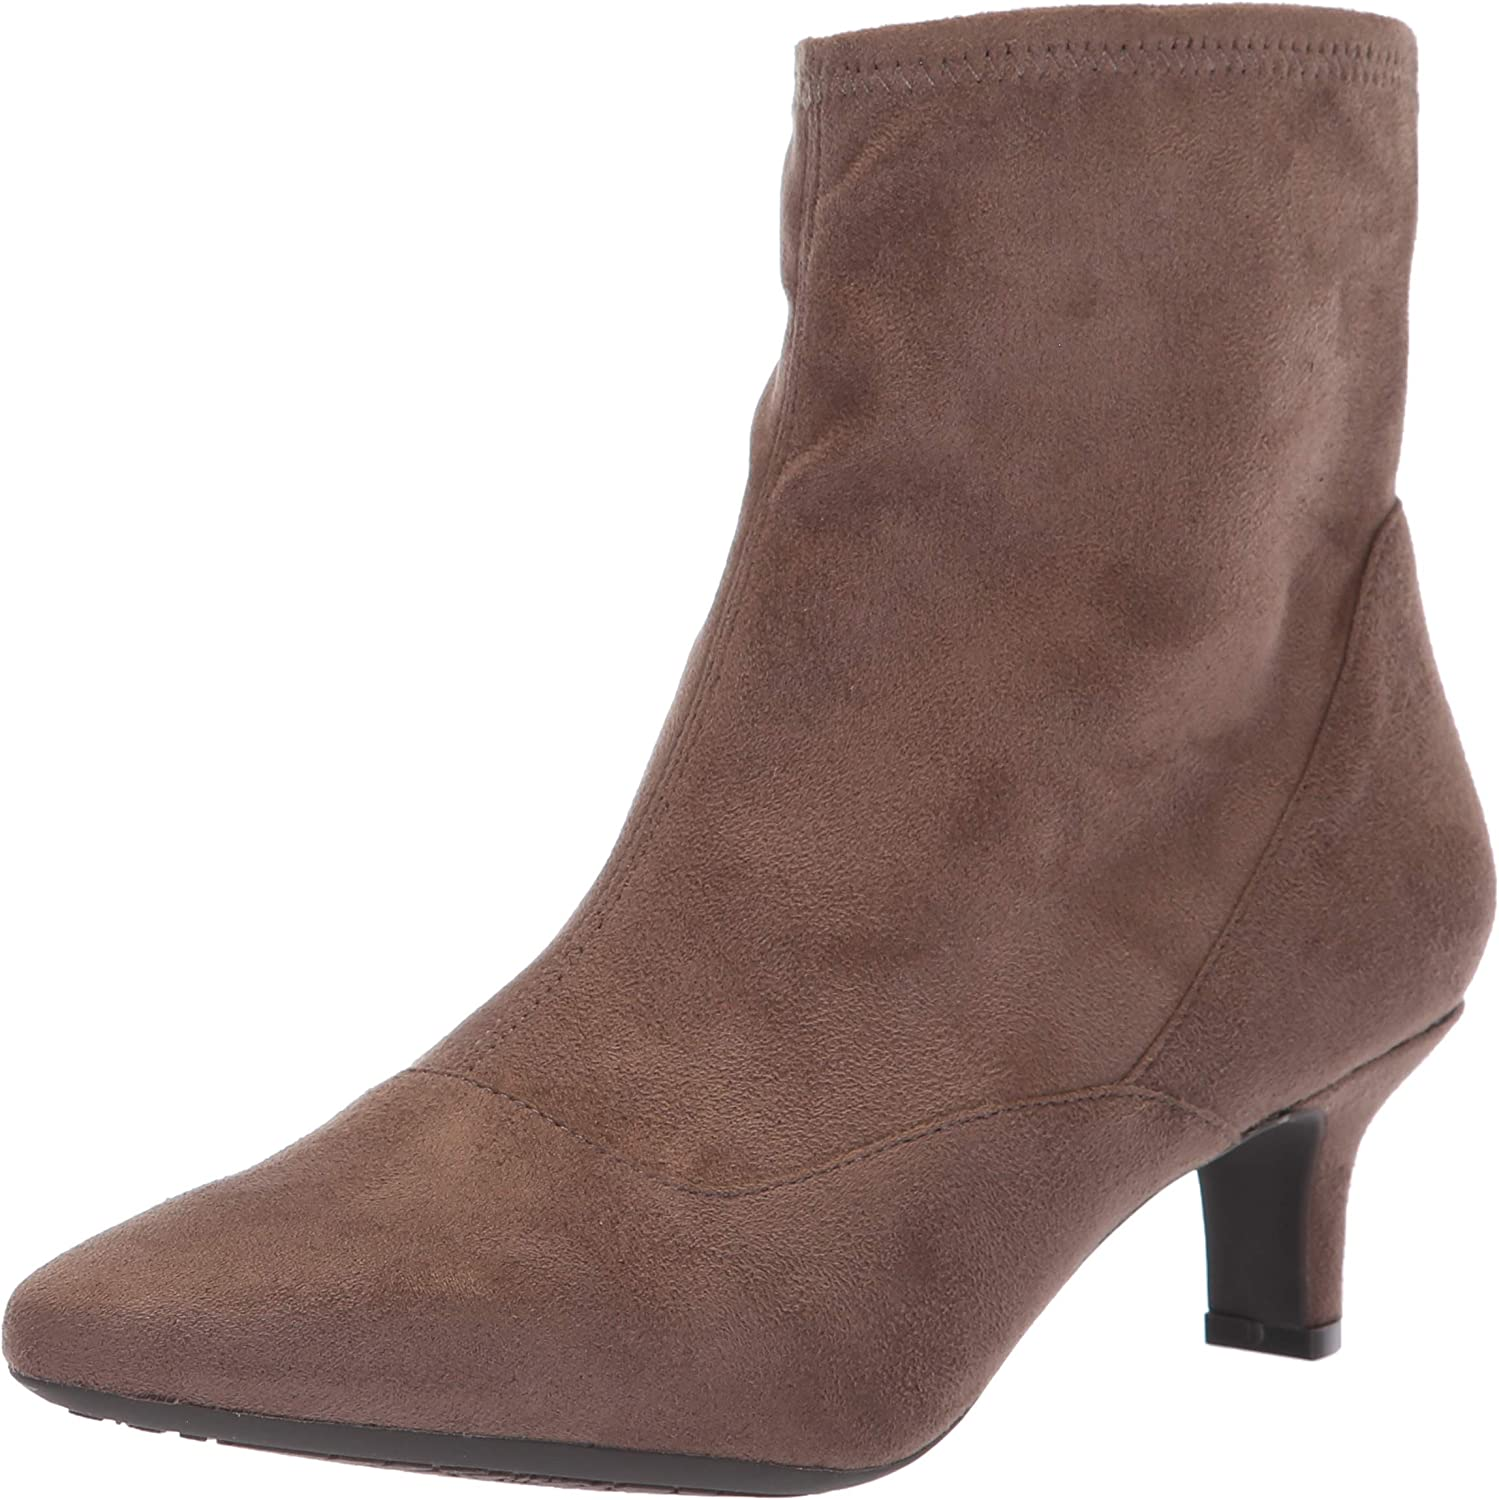 Rockport Women's Kimly Bootie Stretch Ankle Boot Microsuede